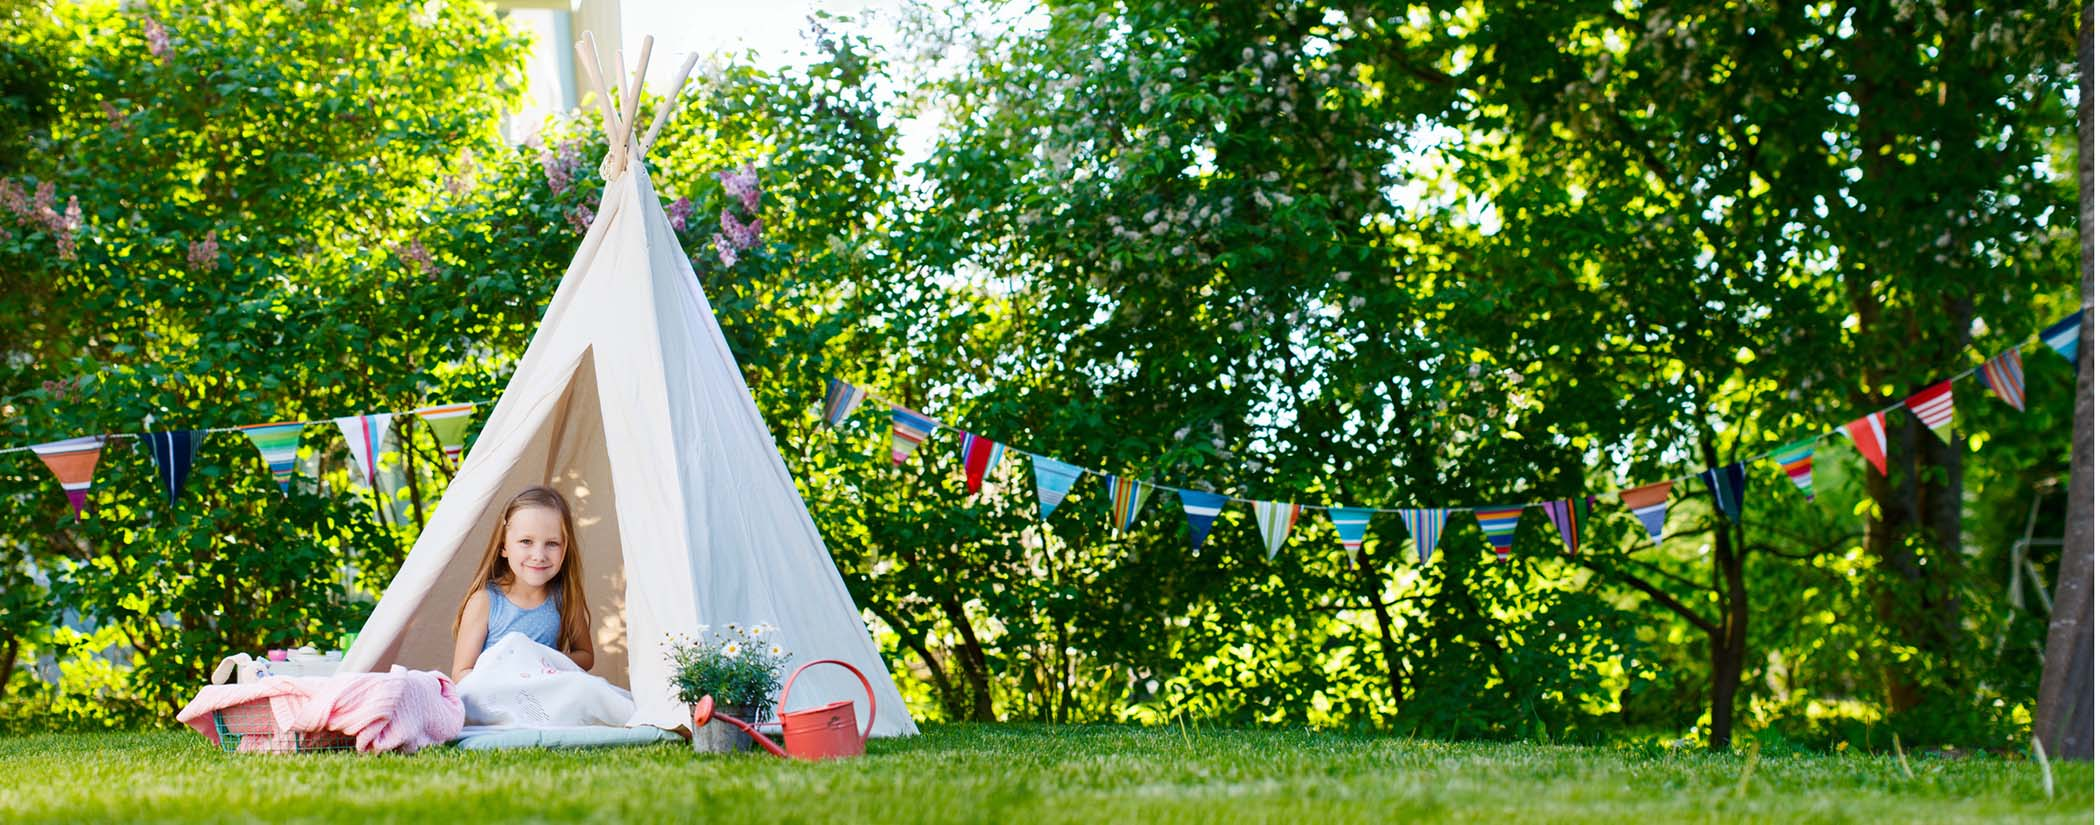 Camping in your backyard can be an unforgettable experience without going too far!